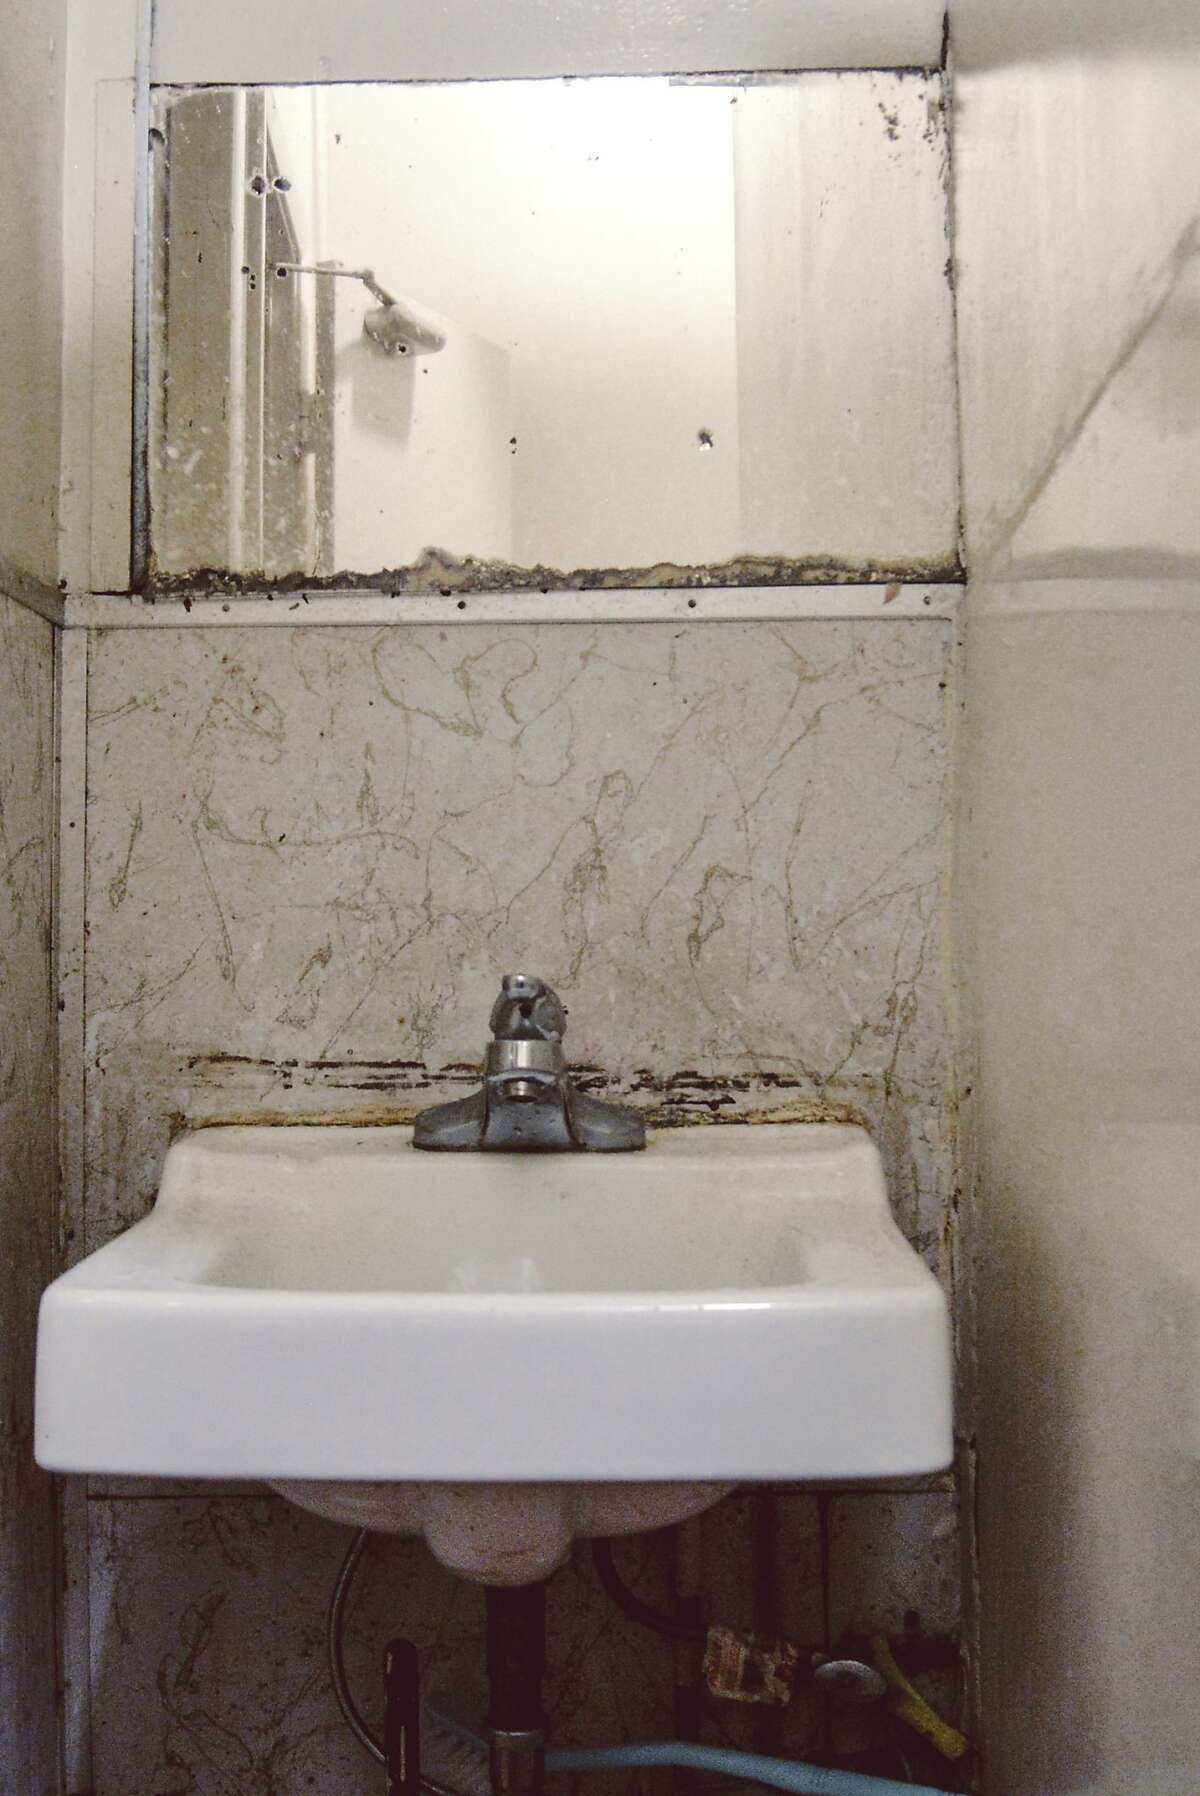 The restroom on Ivy Gao's floor includes a sink that multiple residents must share in her Chinatown single-room occupancy hotel.